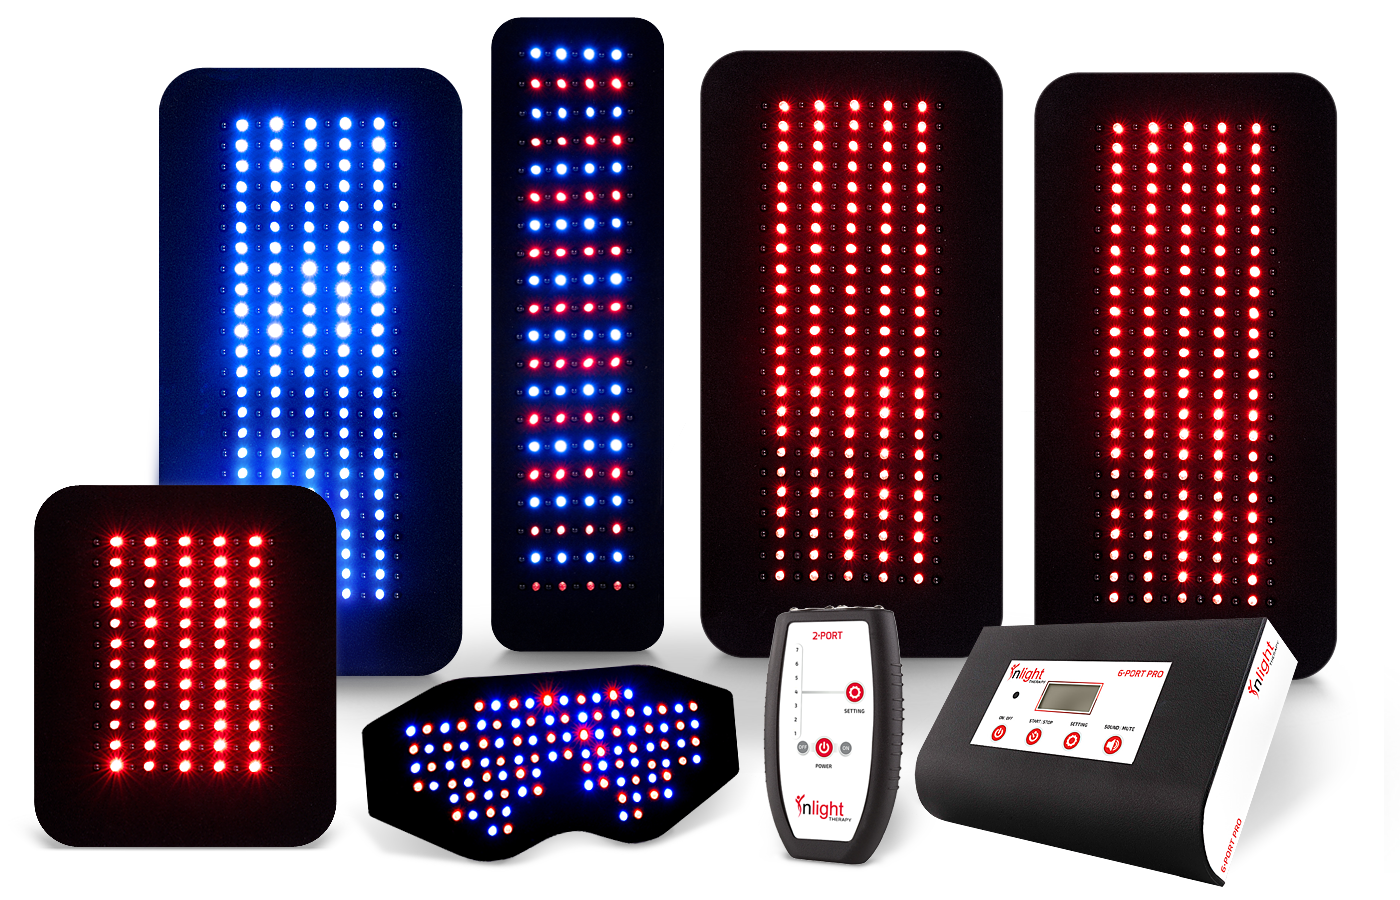 Inlight Therapy Inc. LED light system with 6 port controller a 2 port controller and 6 LED pads